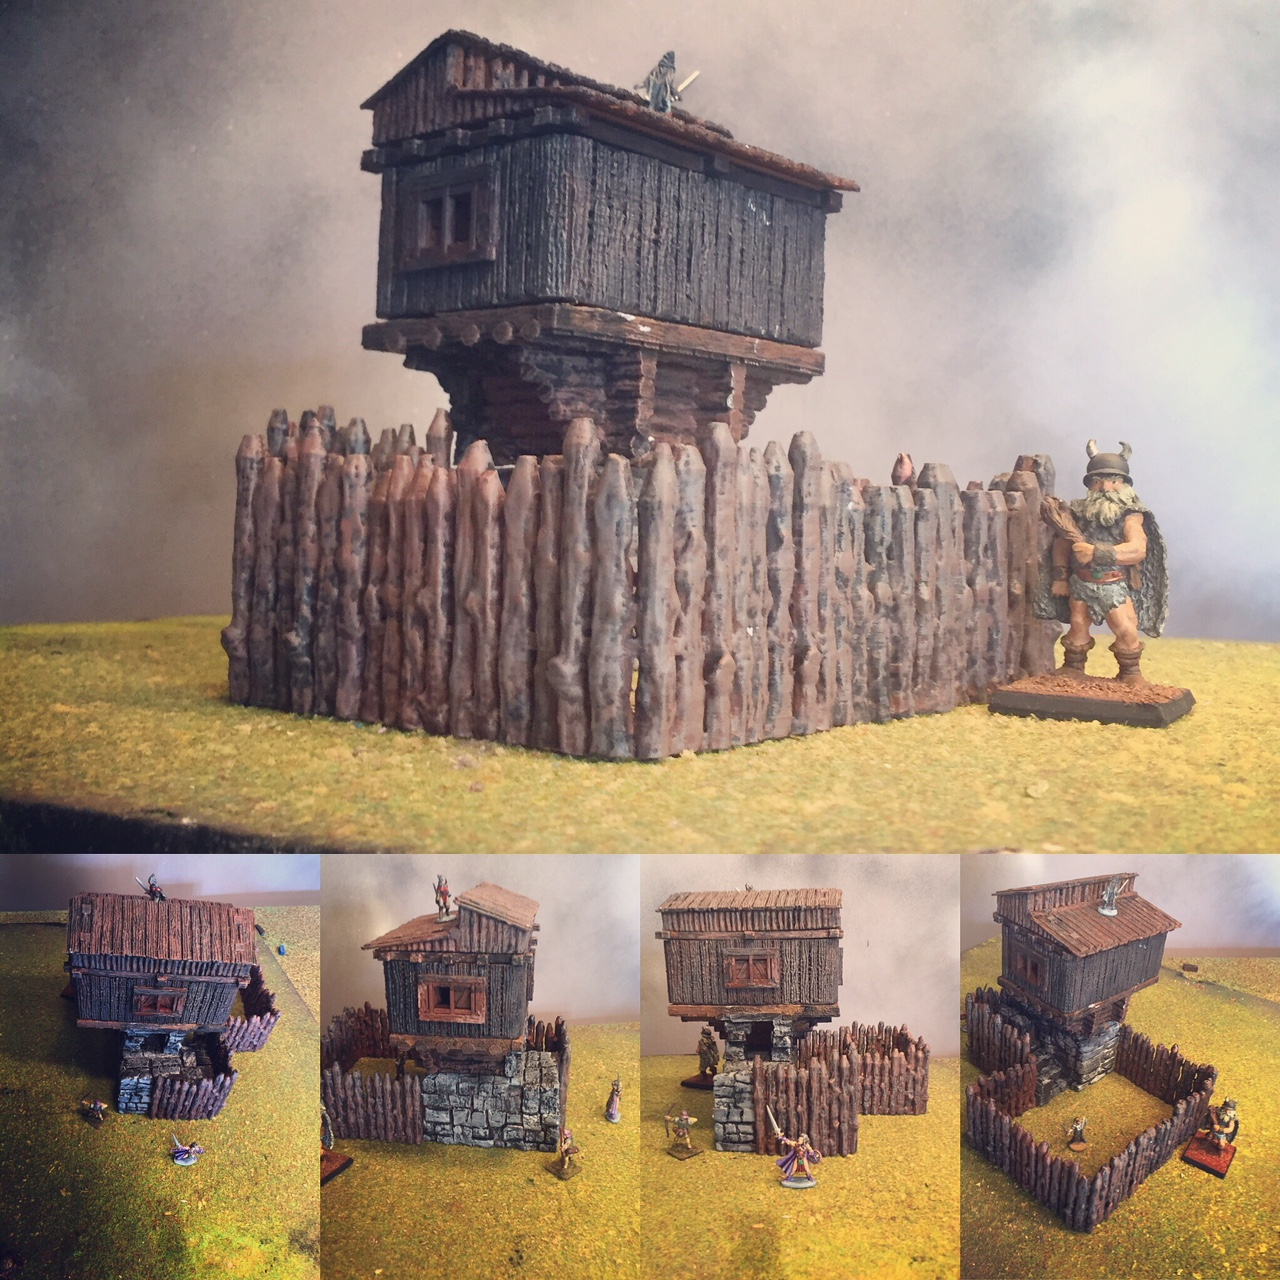 Free Hunting Lodge for 3D Printing | GameScape3D